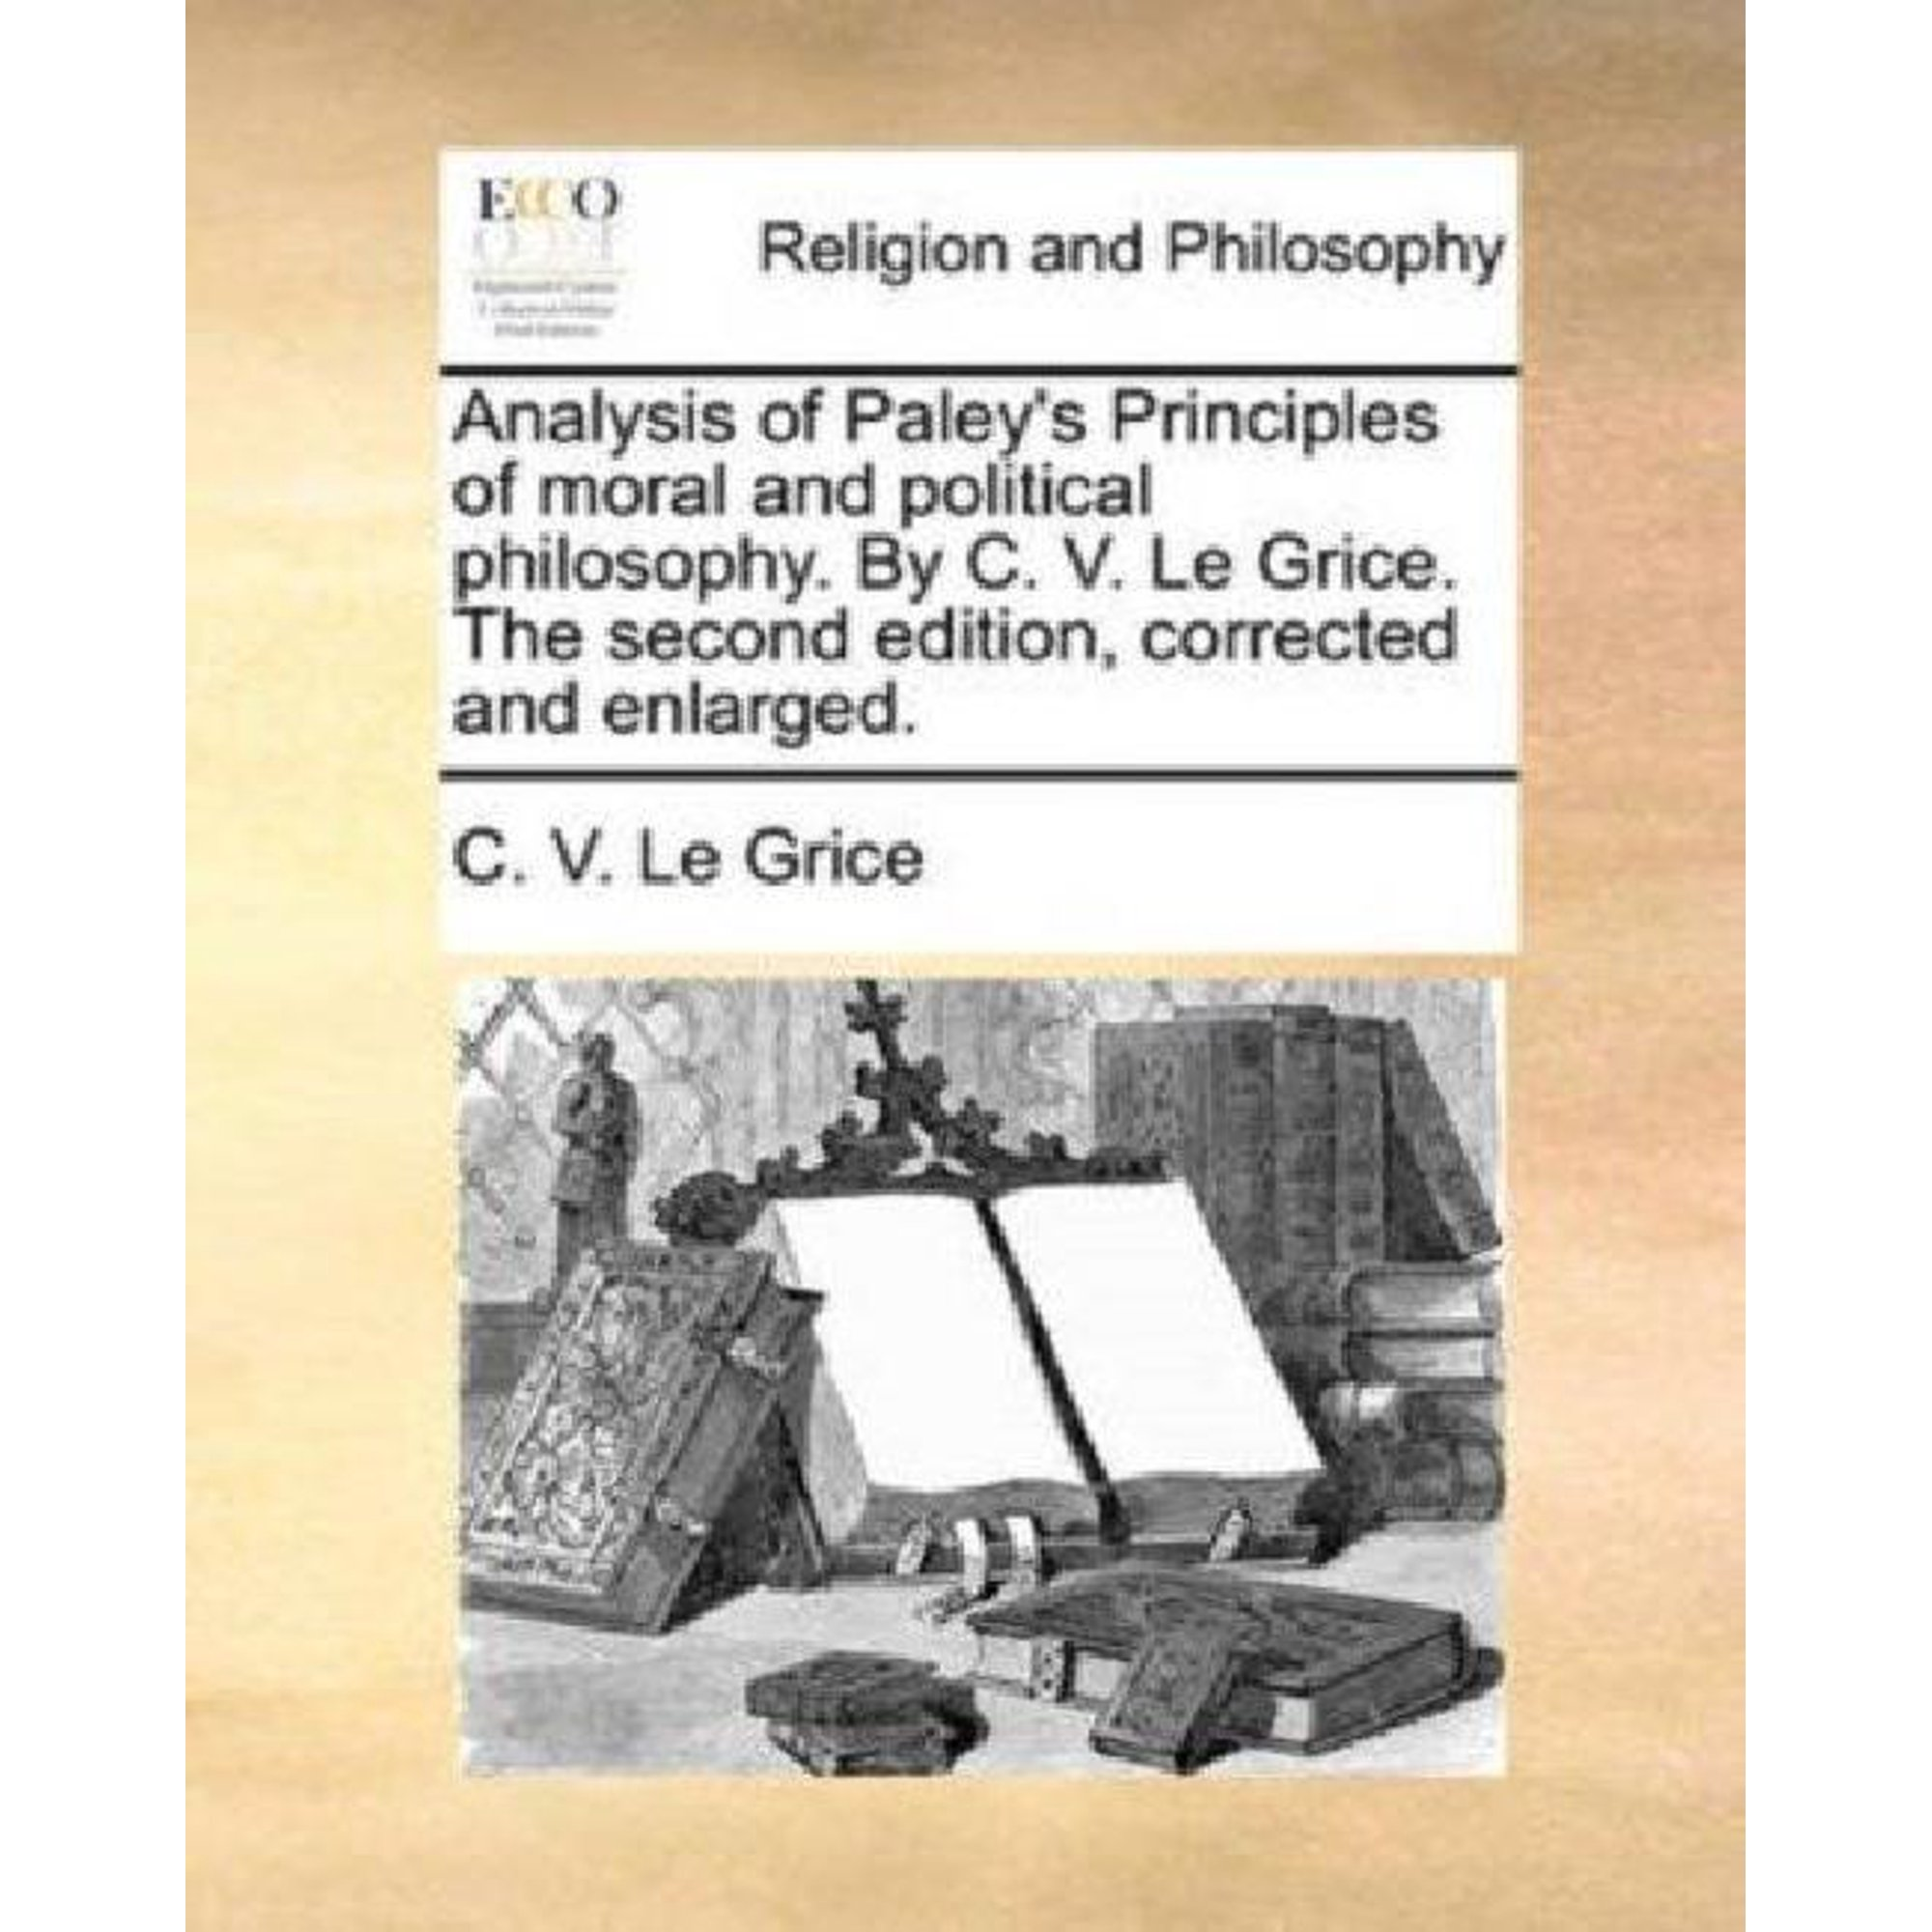 Analysis of Paleys Principles of moral and political philosophy - By C.V. Le Grice.